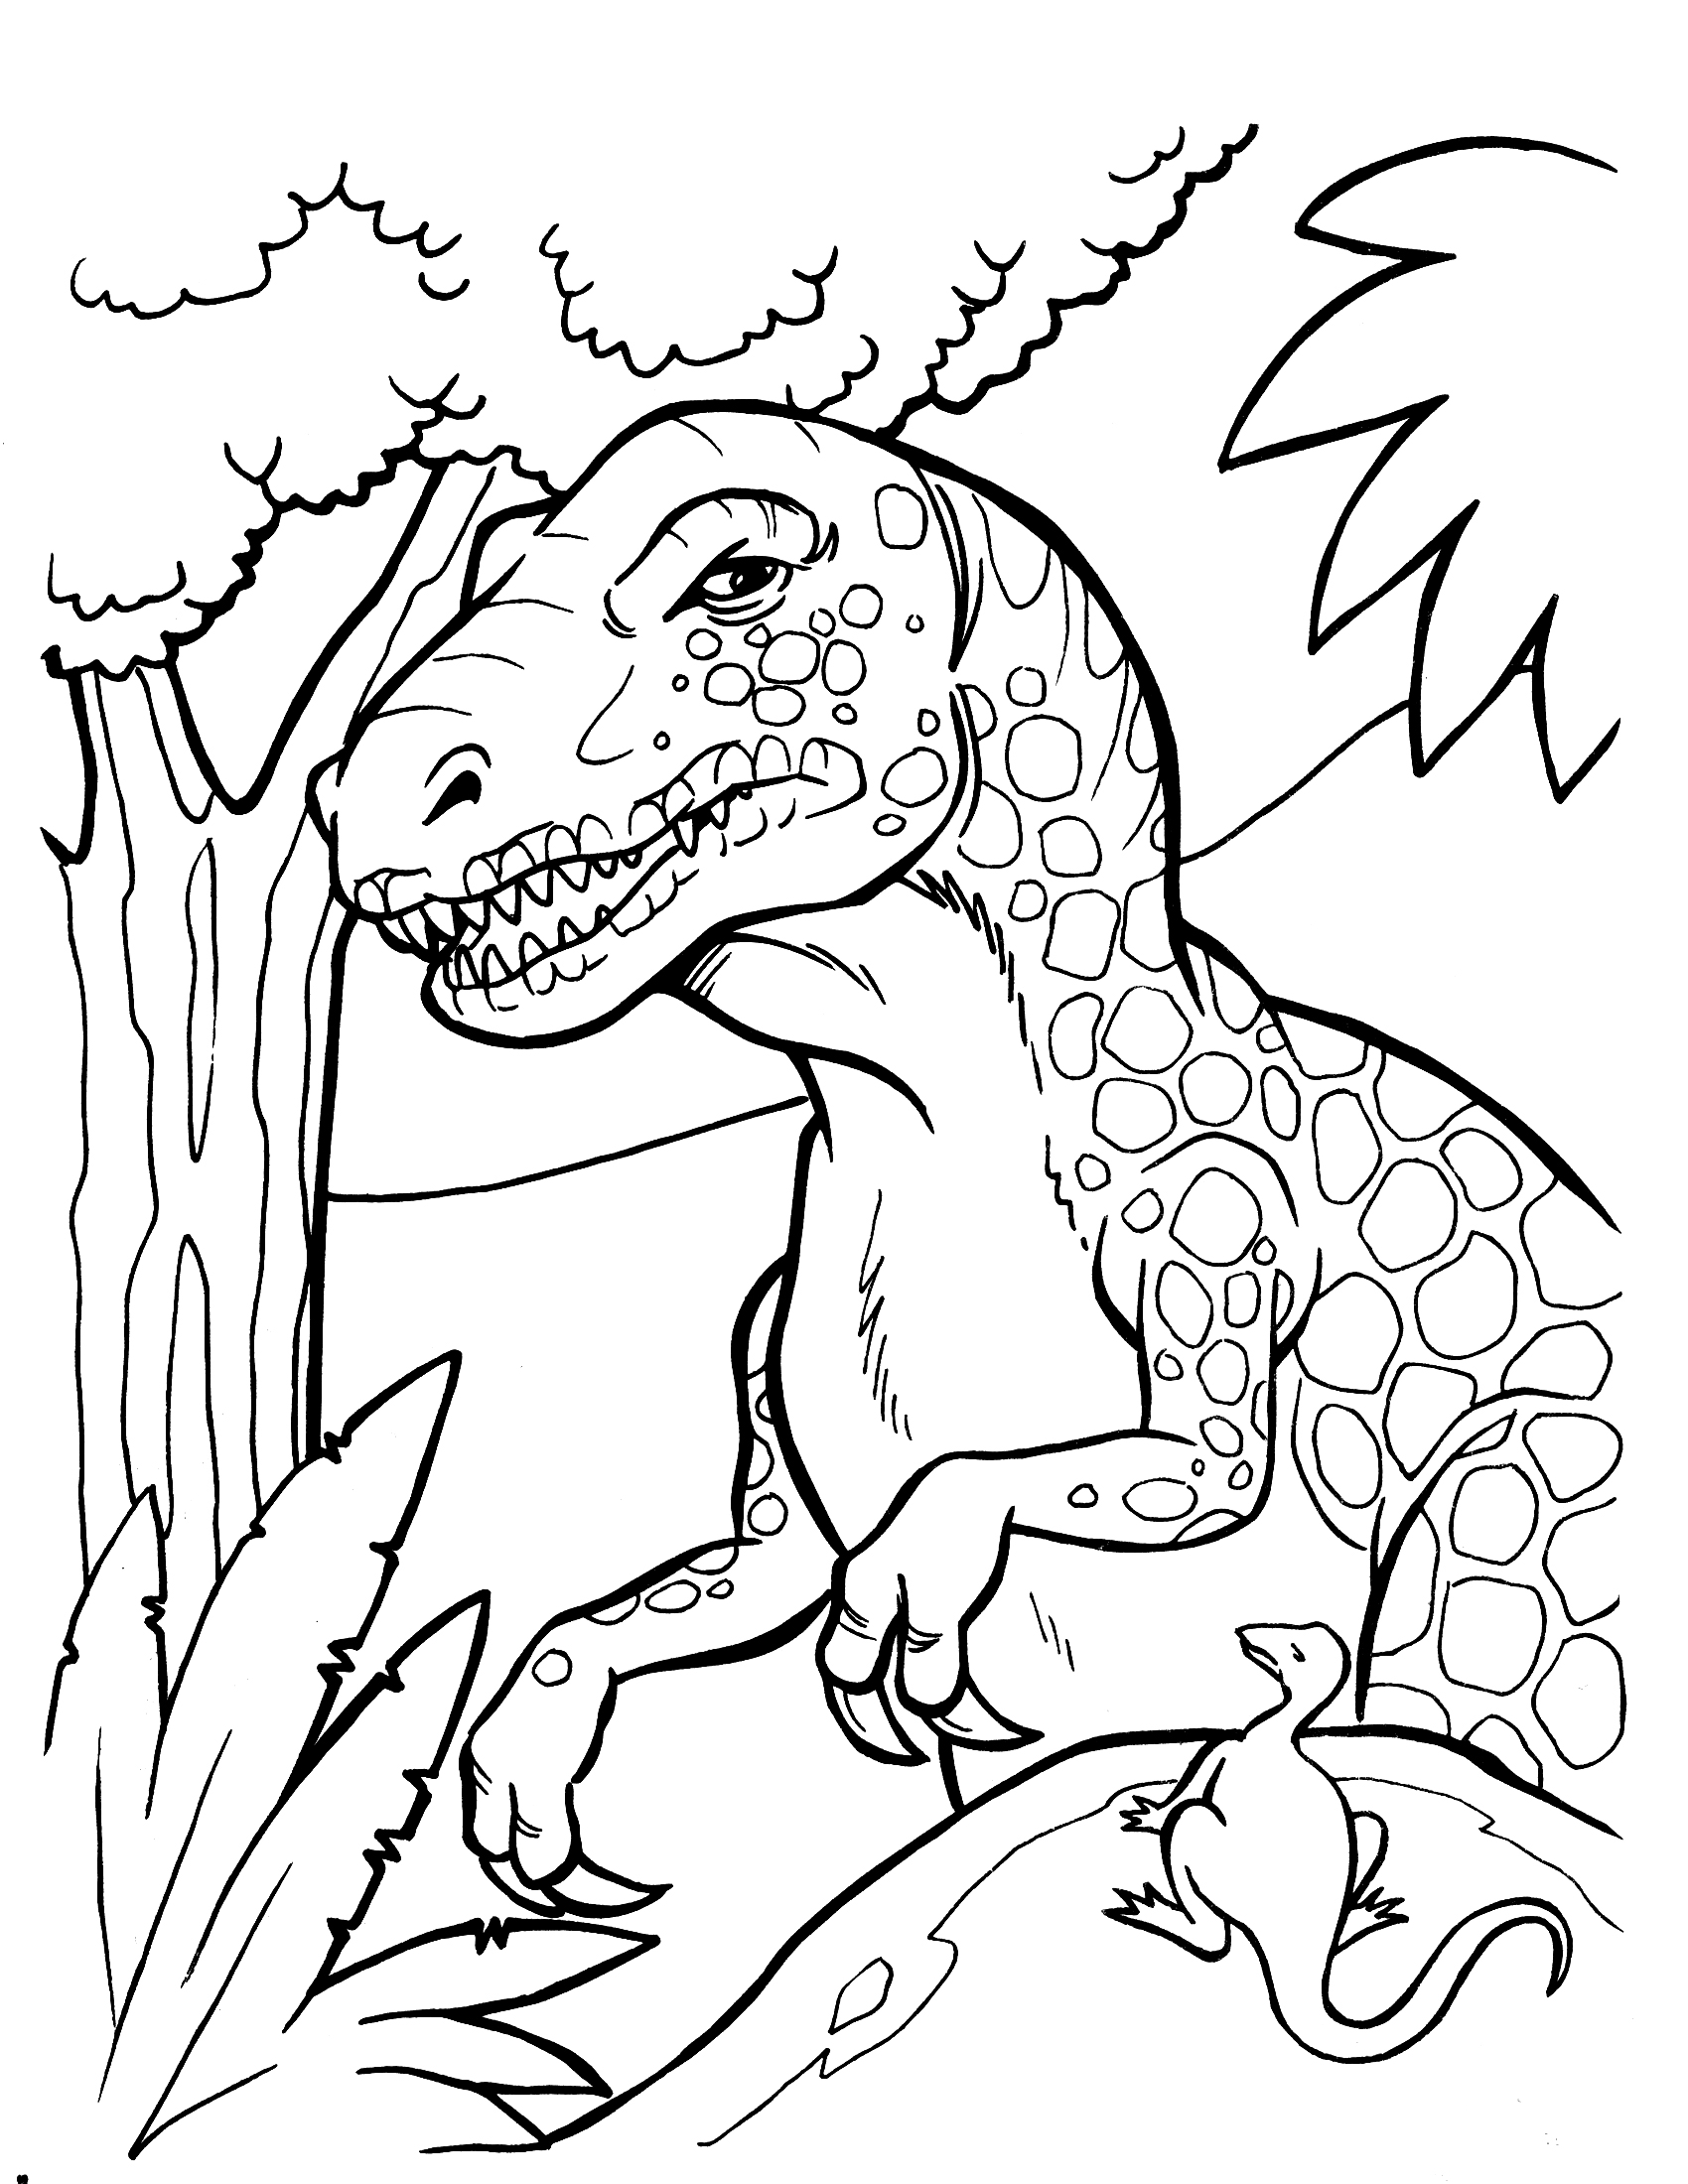 dinosaur coloring pages 360coloringpages. Black Bedroom Furniture Sets. Home Design Ideas